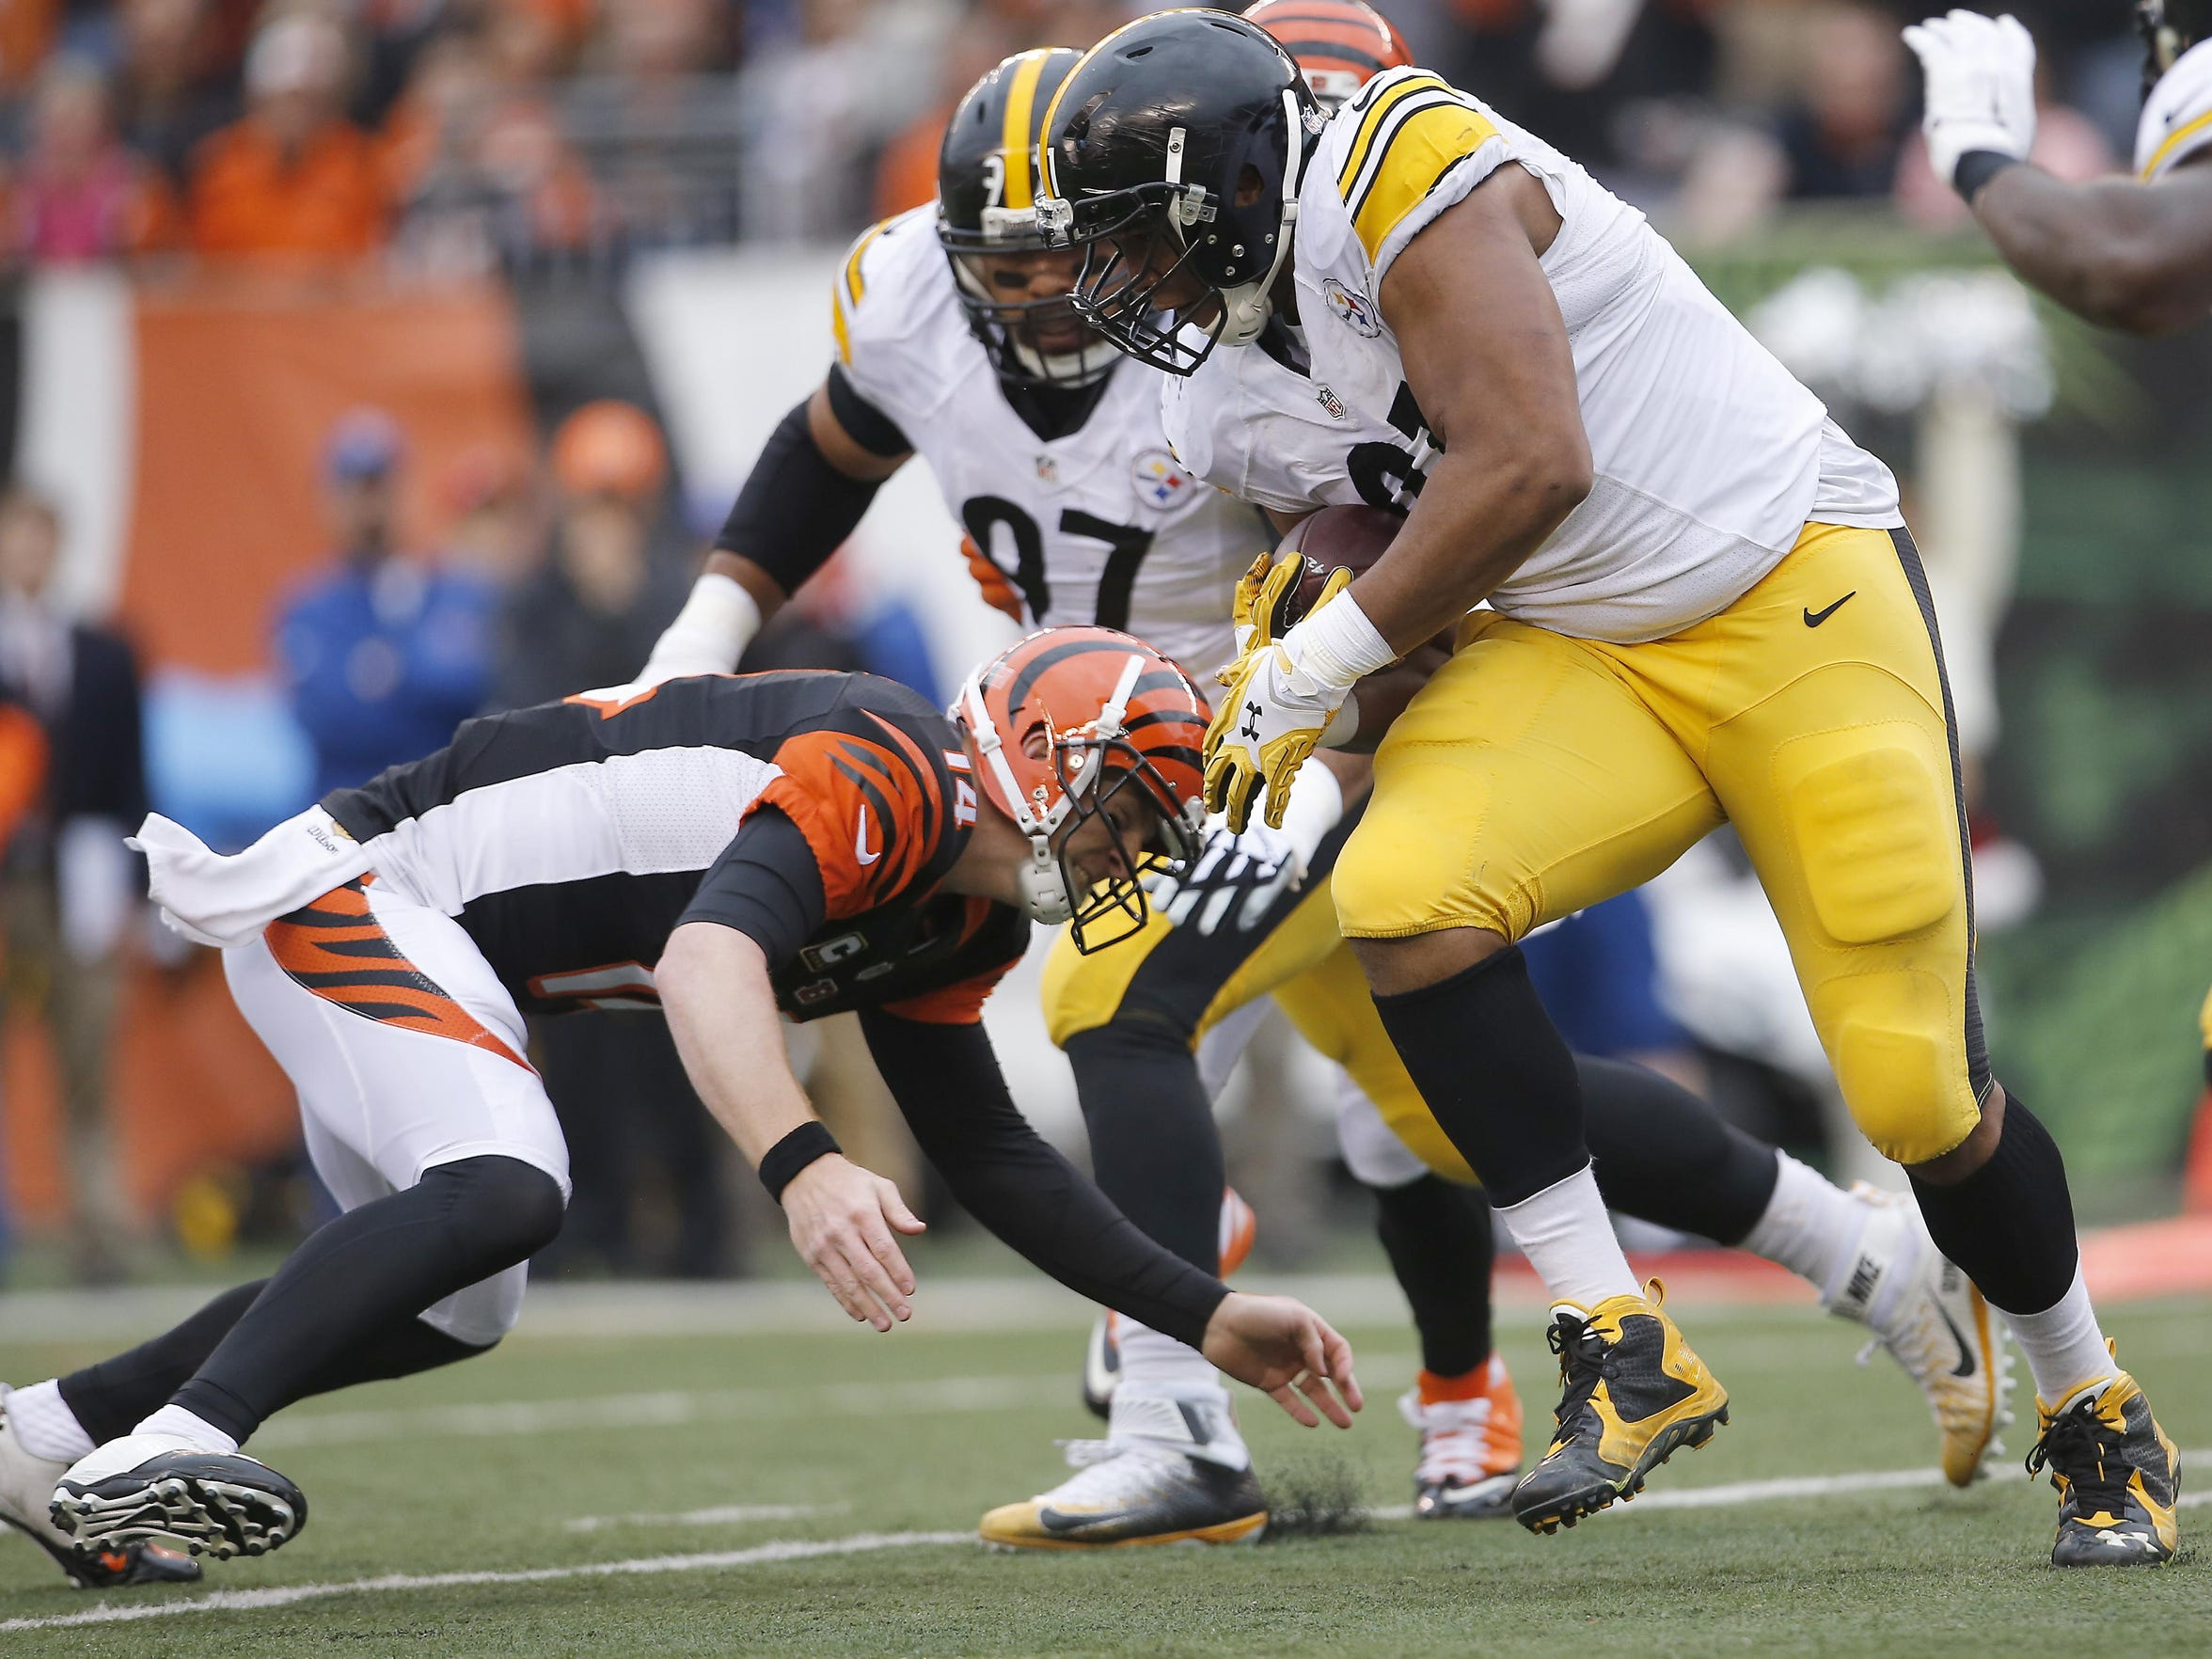 Andy Dalton tackles Steelers defensive end Stephon